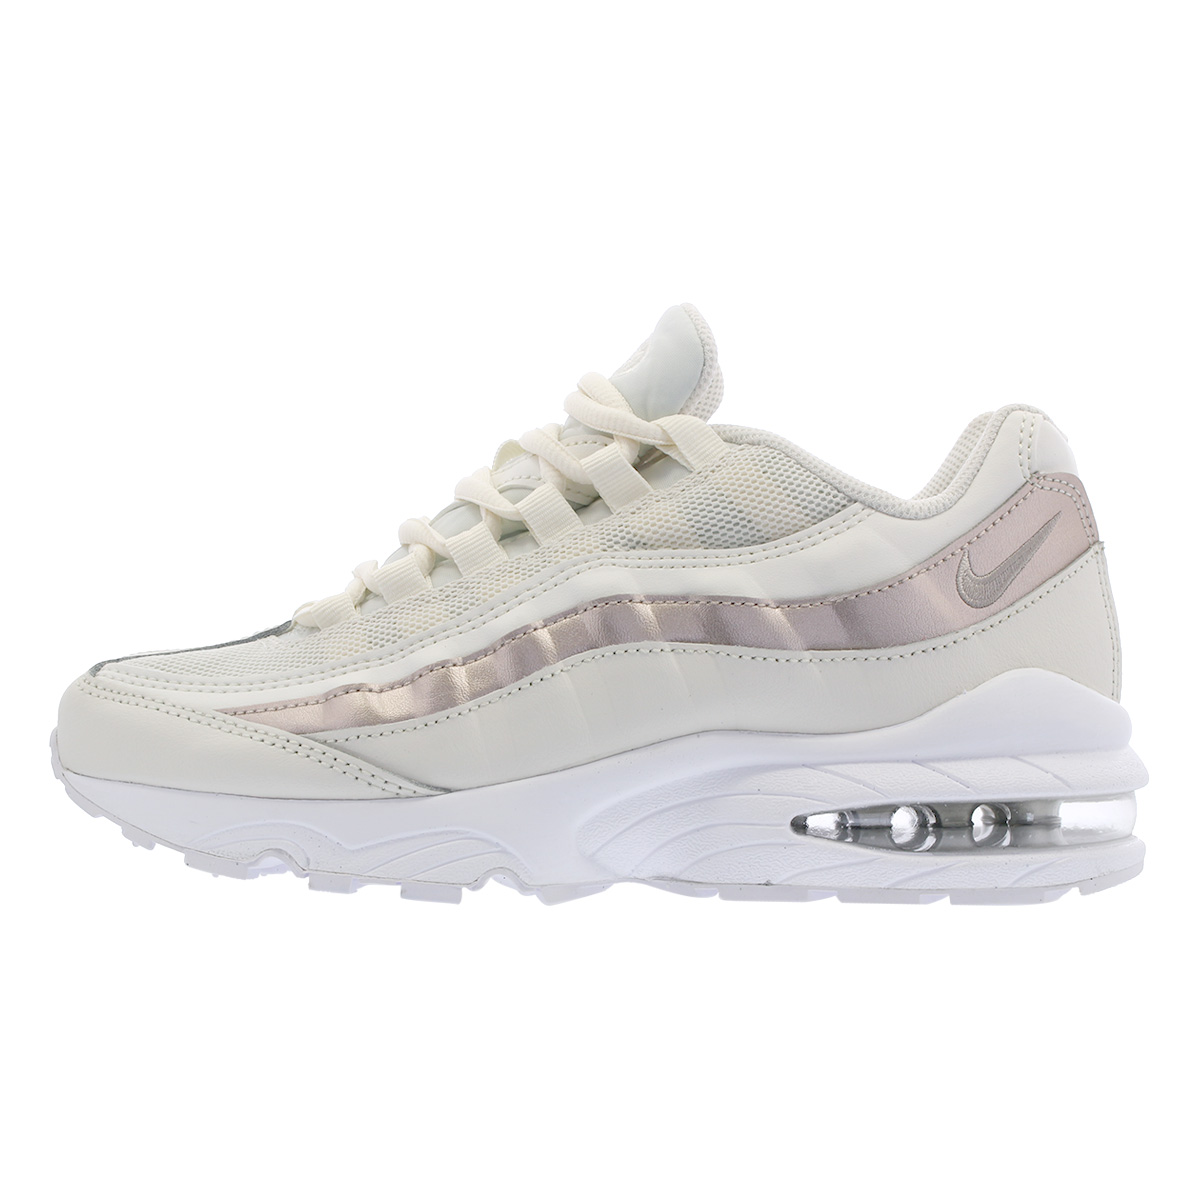 39292b3320 Select Lowtex Nike Air Max 95 Gs Kie Ney Amax Bone Rose